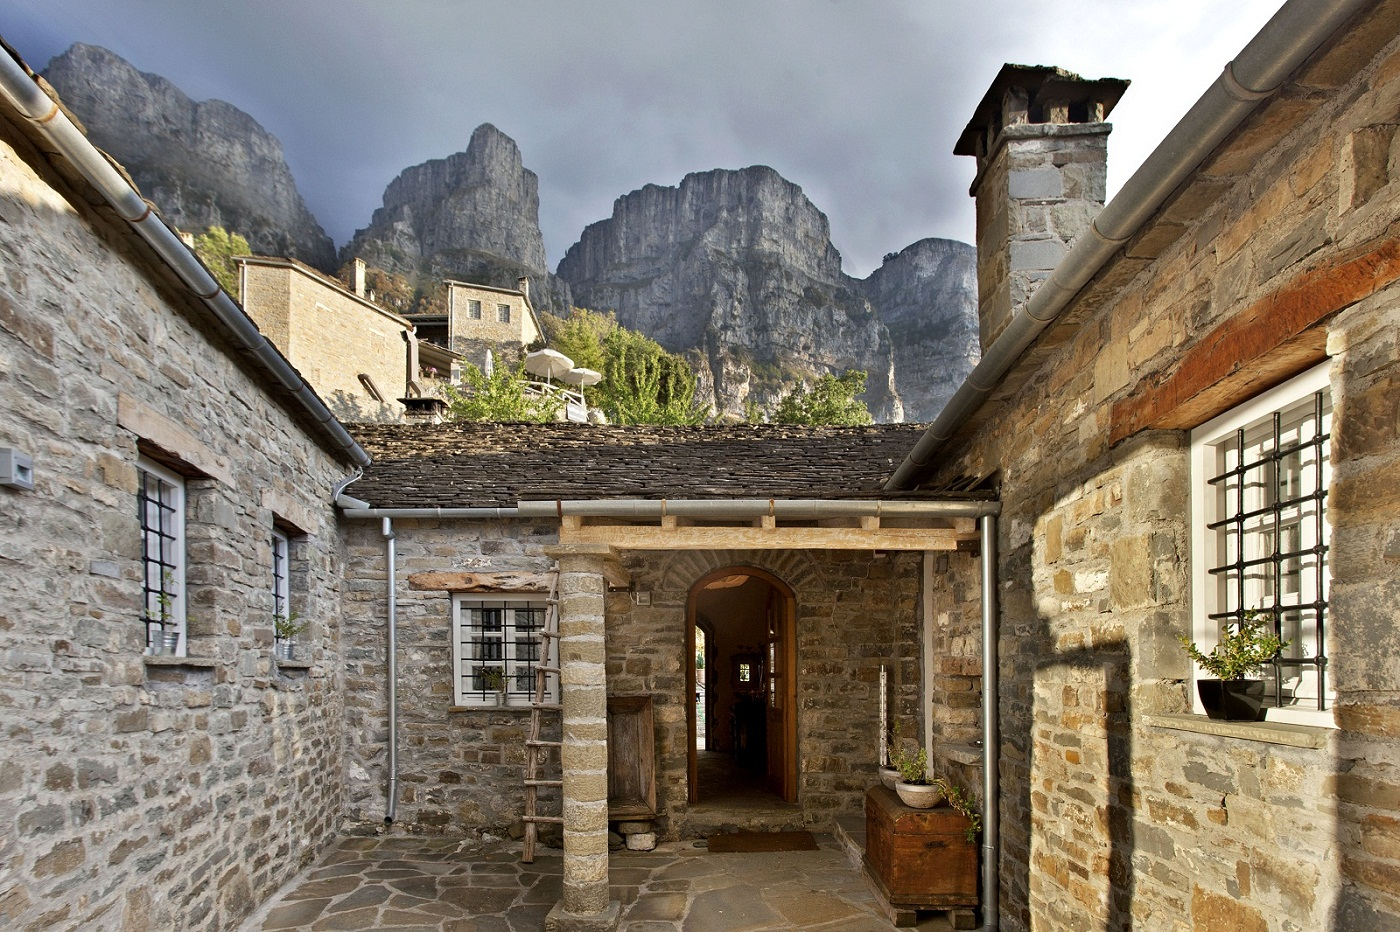 Within the Vikos Gorge, this cosmopolitan hotel is 36 km from Drakolimni Lake and 39 km from the natural phenomena of the Stone Forest.   Laid-back, fashionable rooms with wood furnishings feature minibars, flat-screen TVs, free Wi-Fi and rainfall showers. Upgraded rooms offer fireplaces or balconies, while suites add Jacuzzis. Room service is available.  Complimentary breakfast is served in a refined restaurant with views of the Gorge. There's also a posh spa with an indoor pool, a steam room and a sauna.